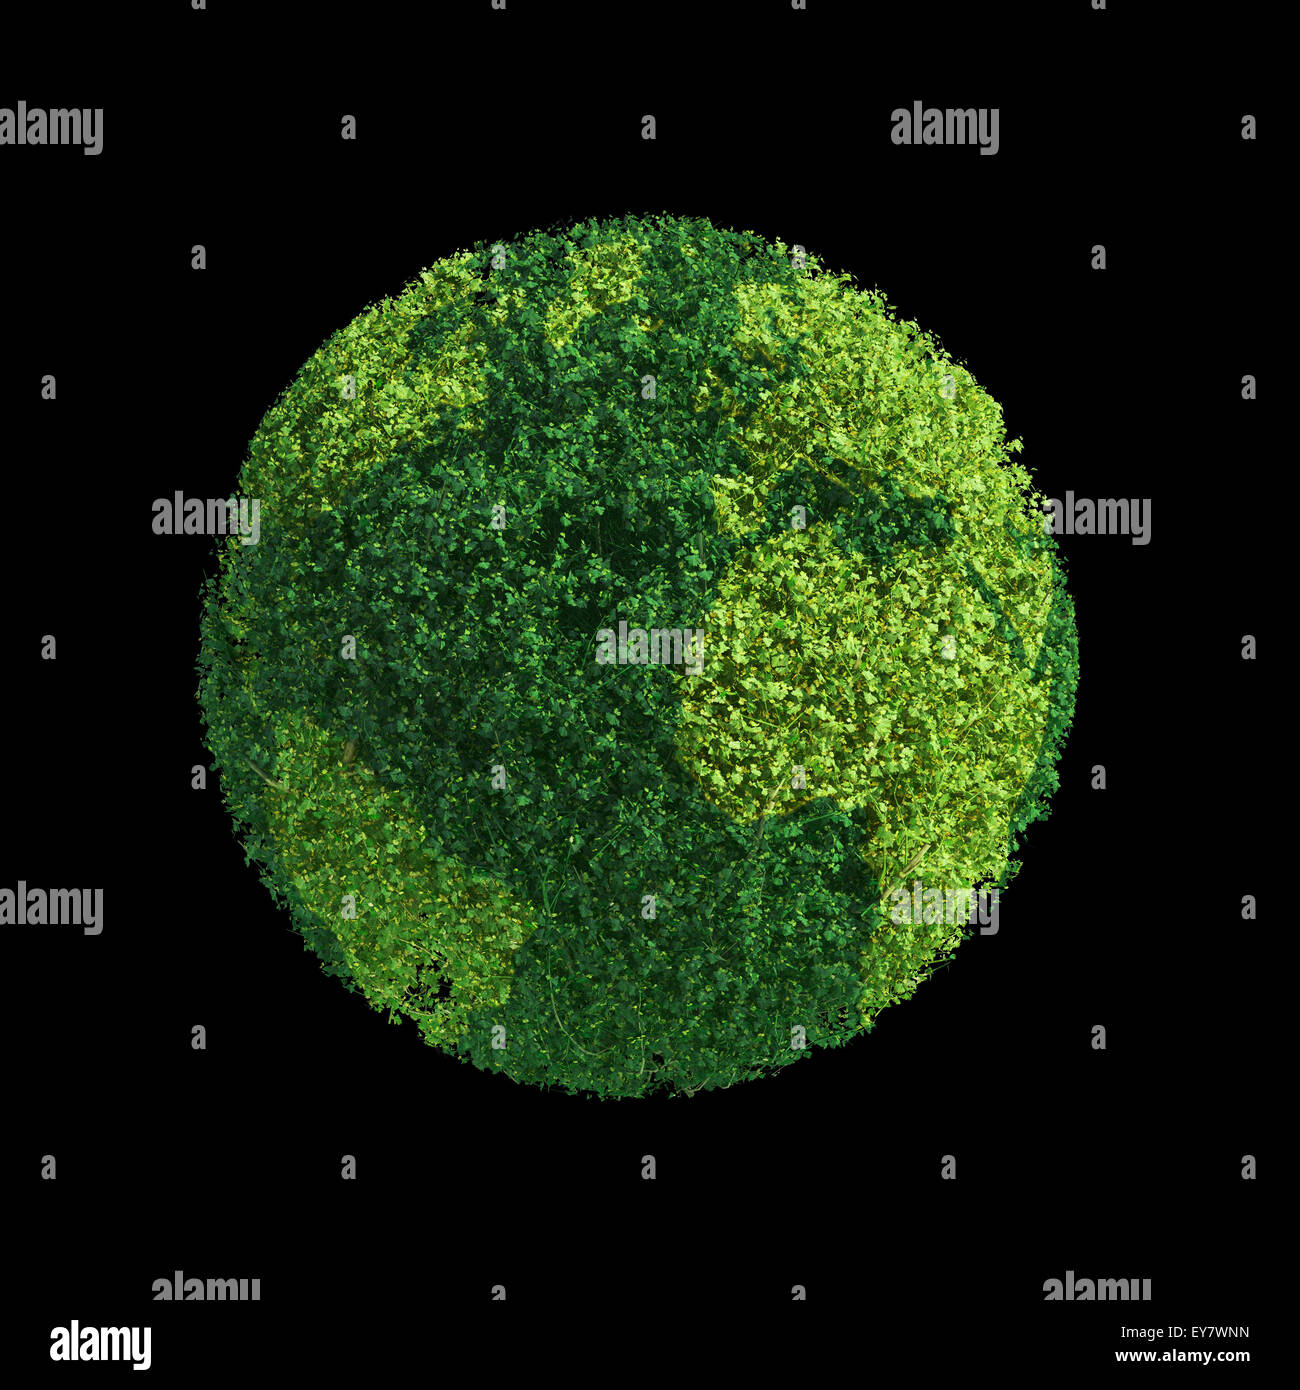 World globe formed out of green leafs - ecology concept - Stock Image